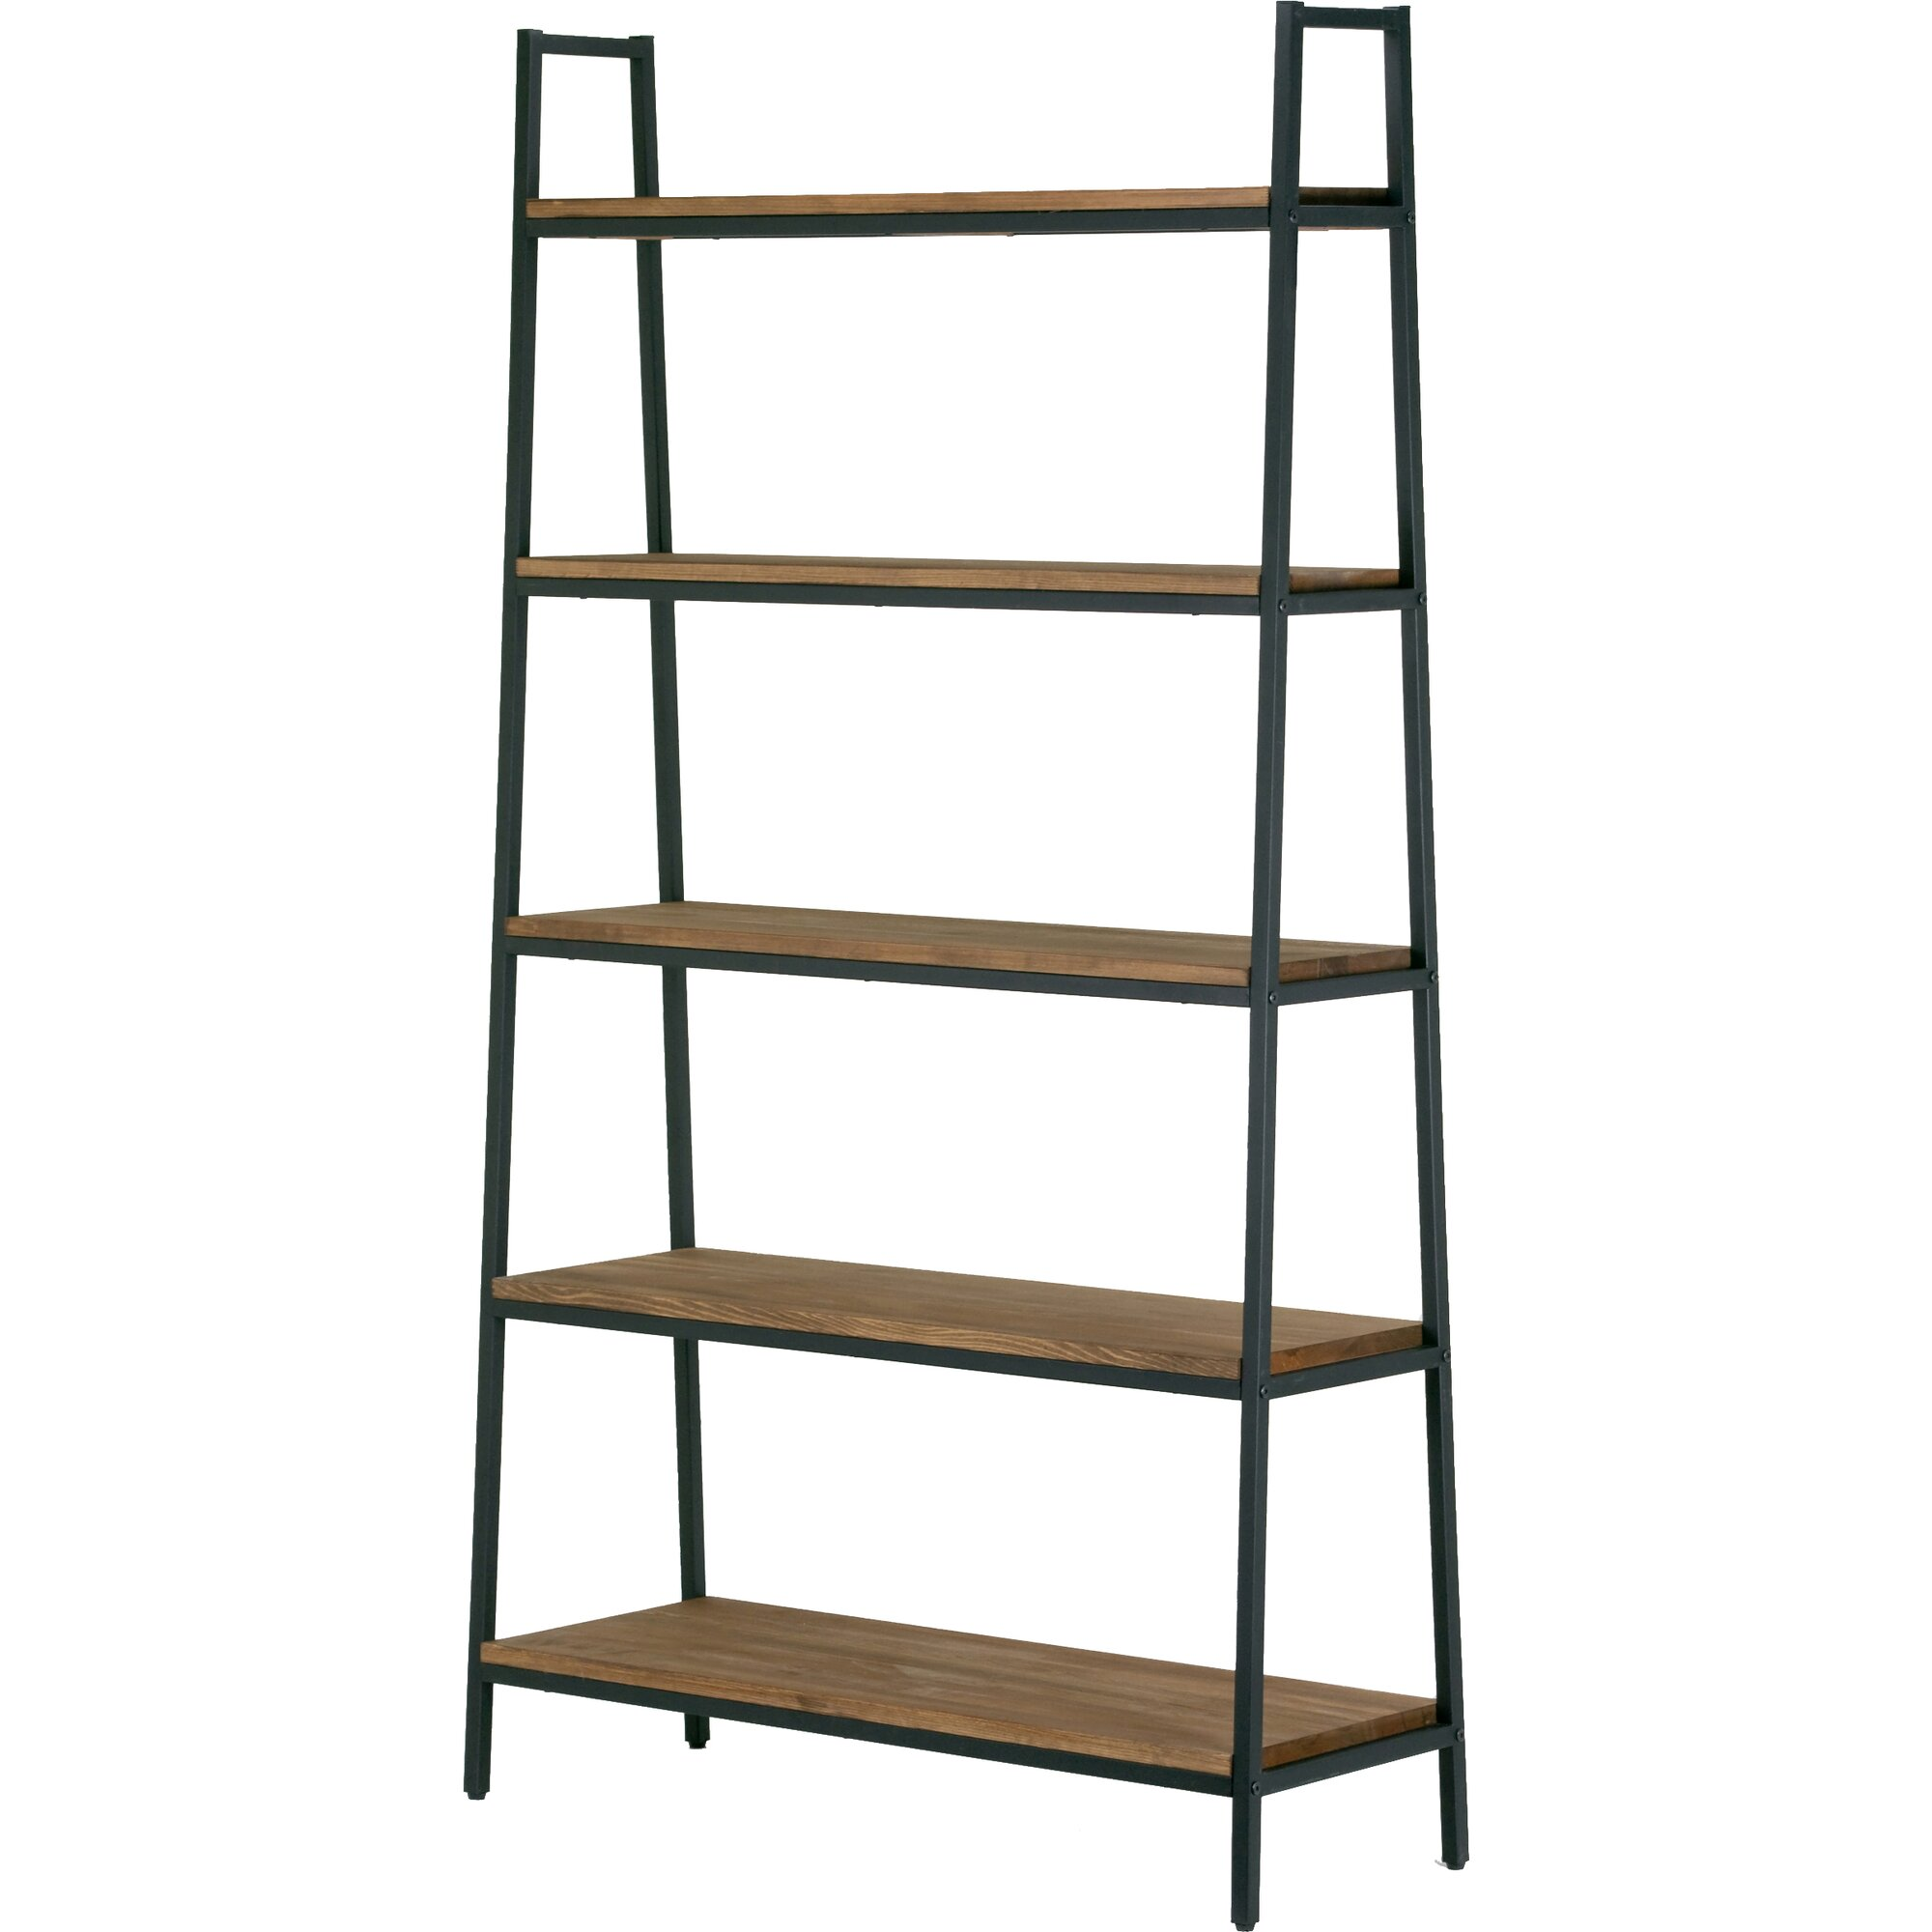 Glamour home decor ailis 72 etagere bookcase reviews for Home decor 72